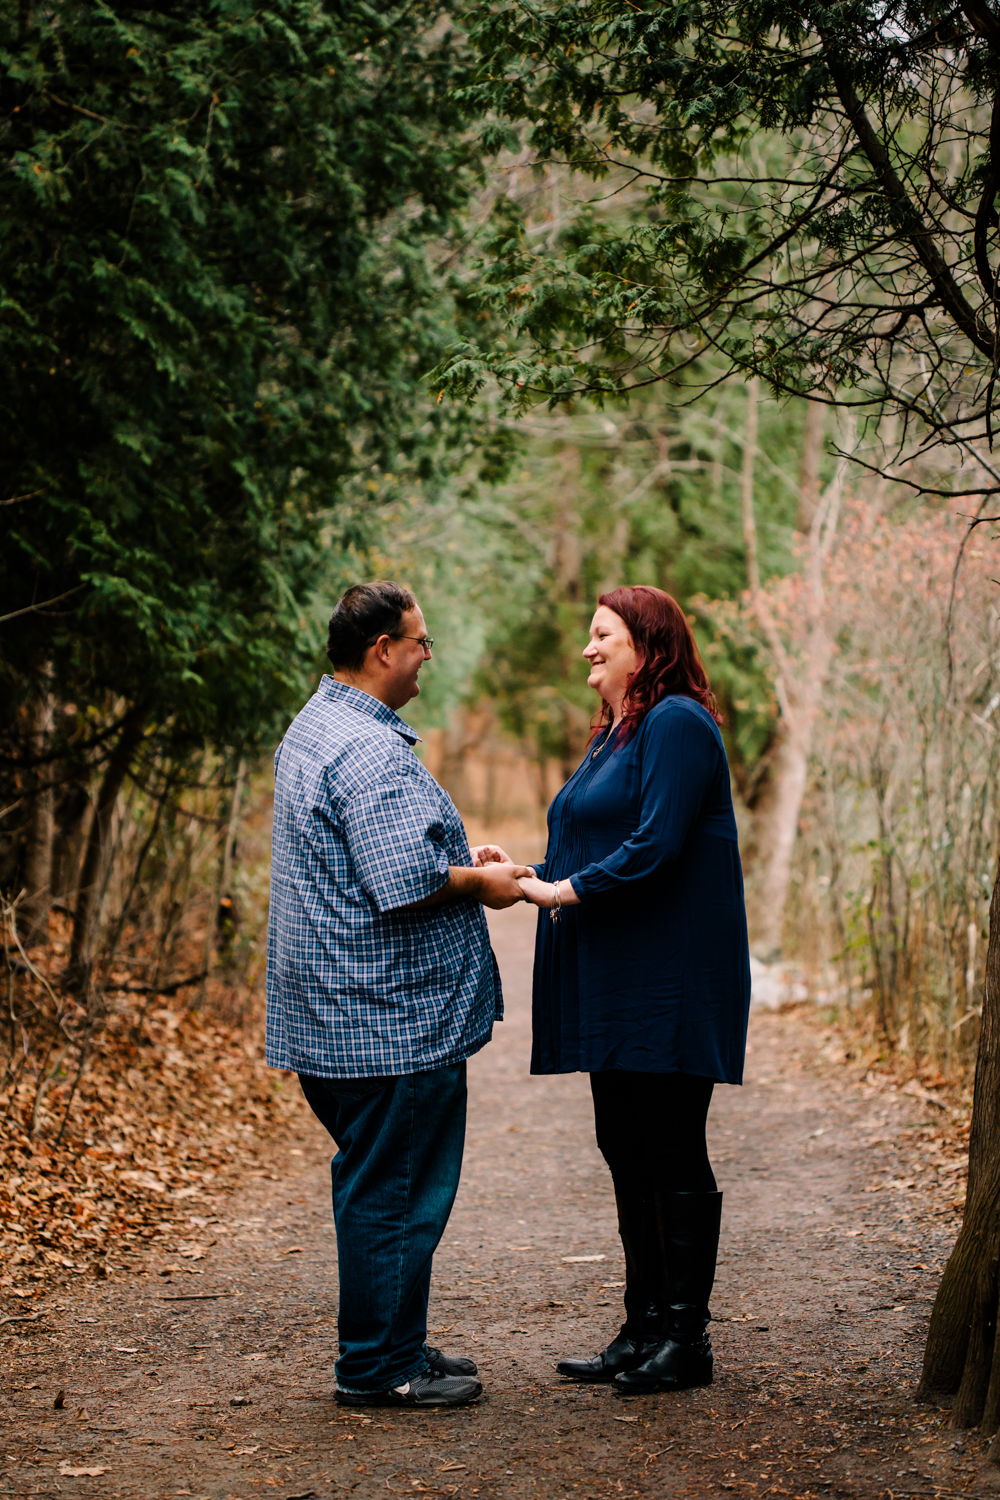 Portrait of a man and woman holding hands surrounded by green trees.